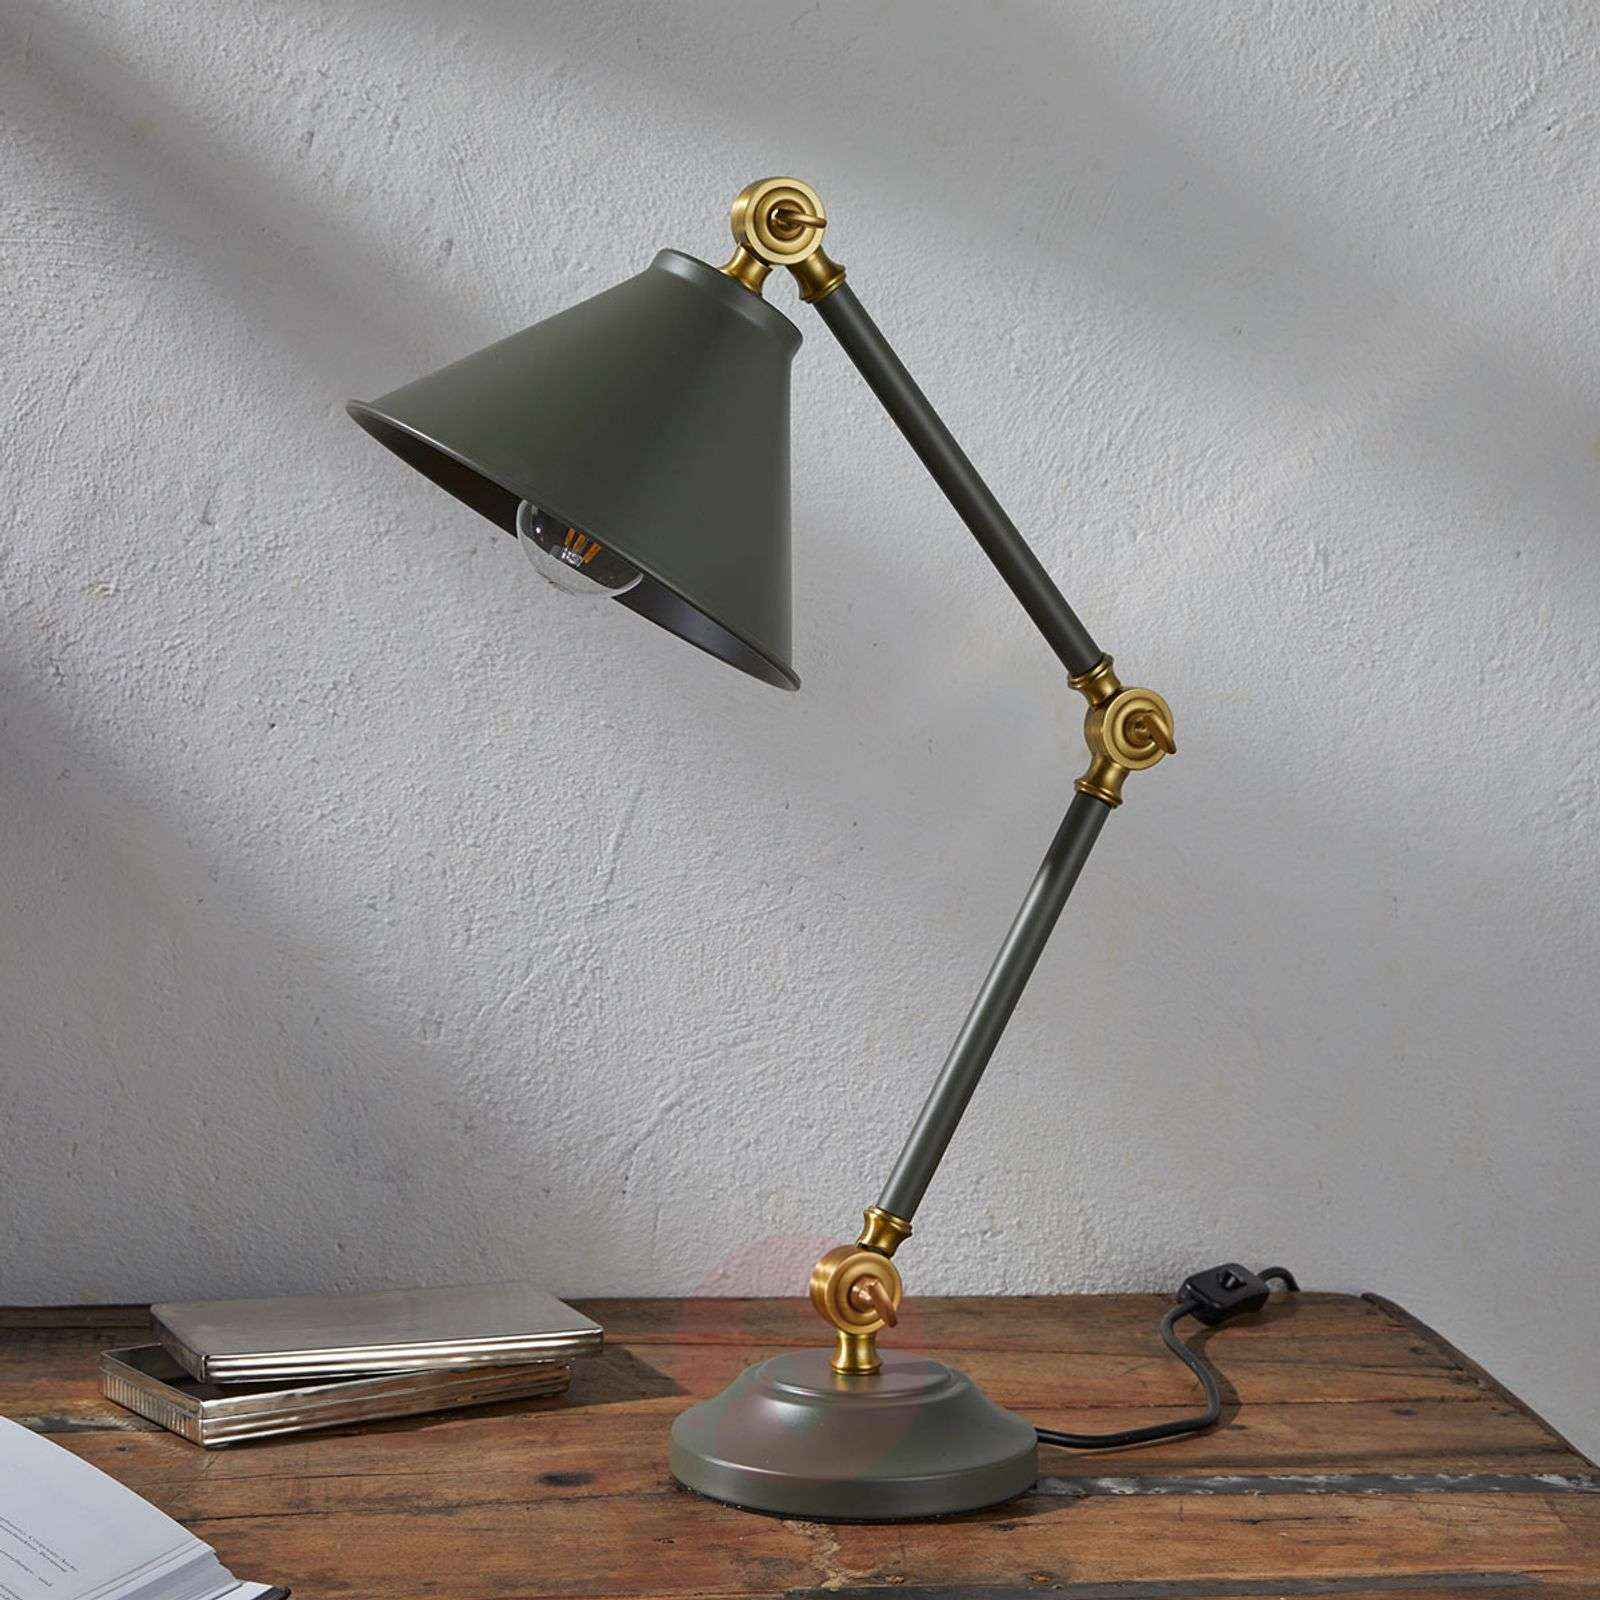 Provence Element adjustable table lamp-3048449-01